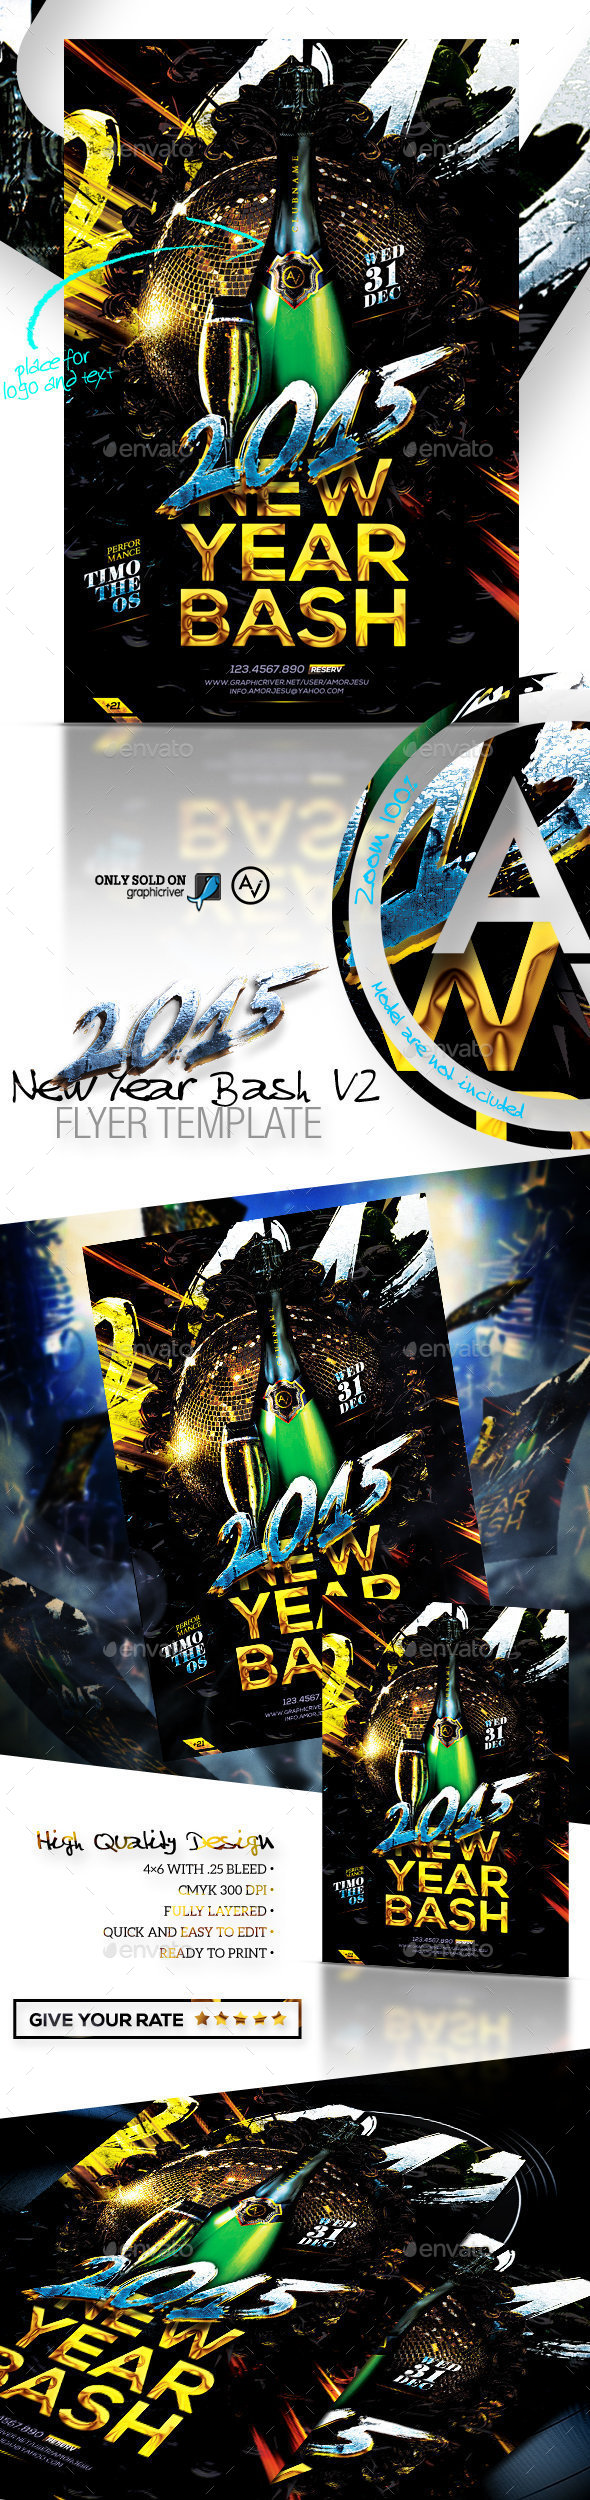 2015 New Year Bash Flyer Template v2 - Clubs & Parties Events